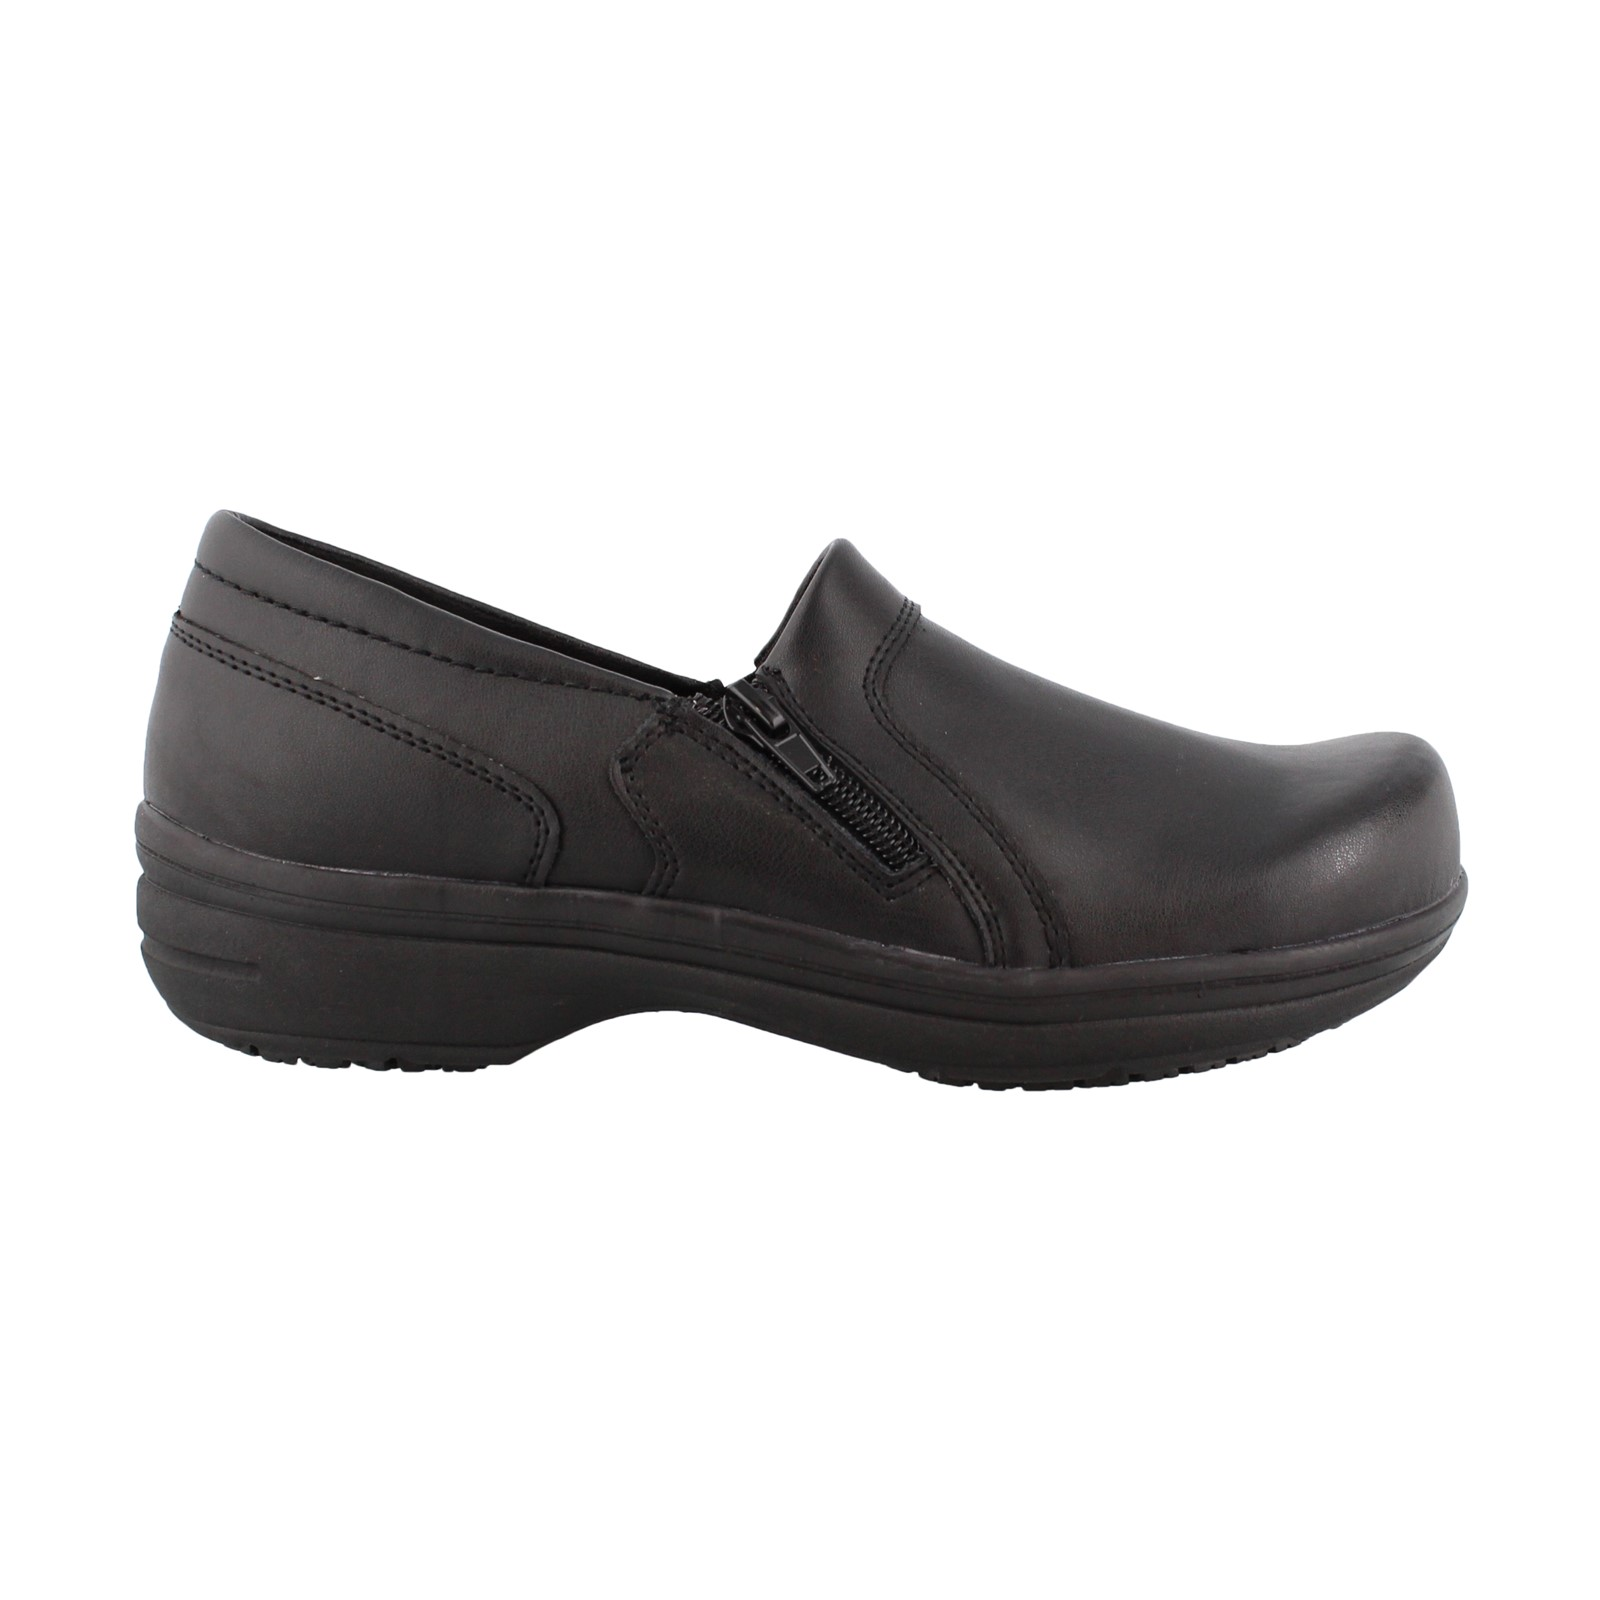 Women's Easy Works by Easy Street, Bentley Clog